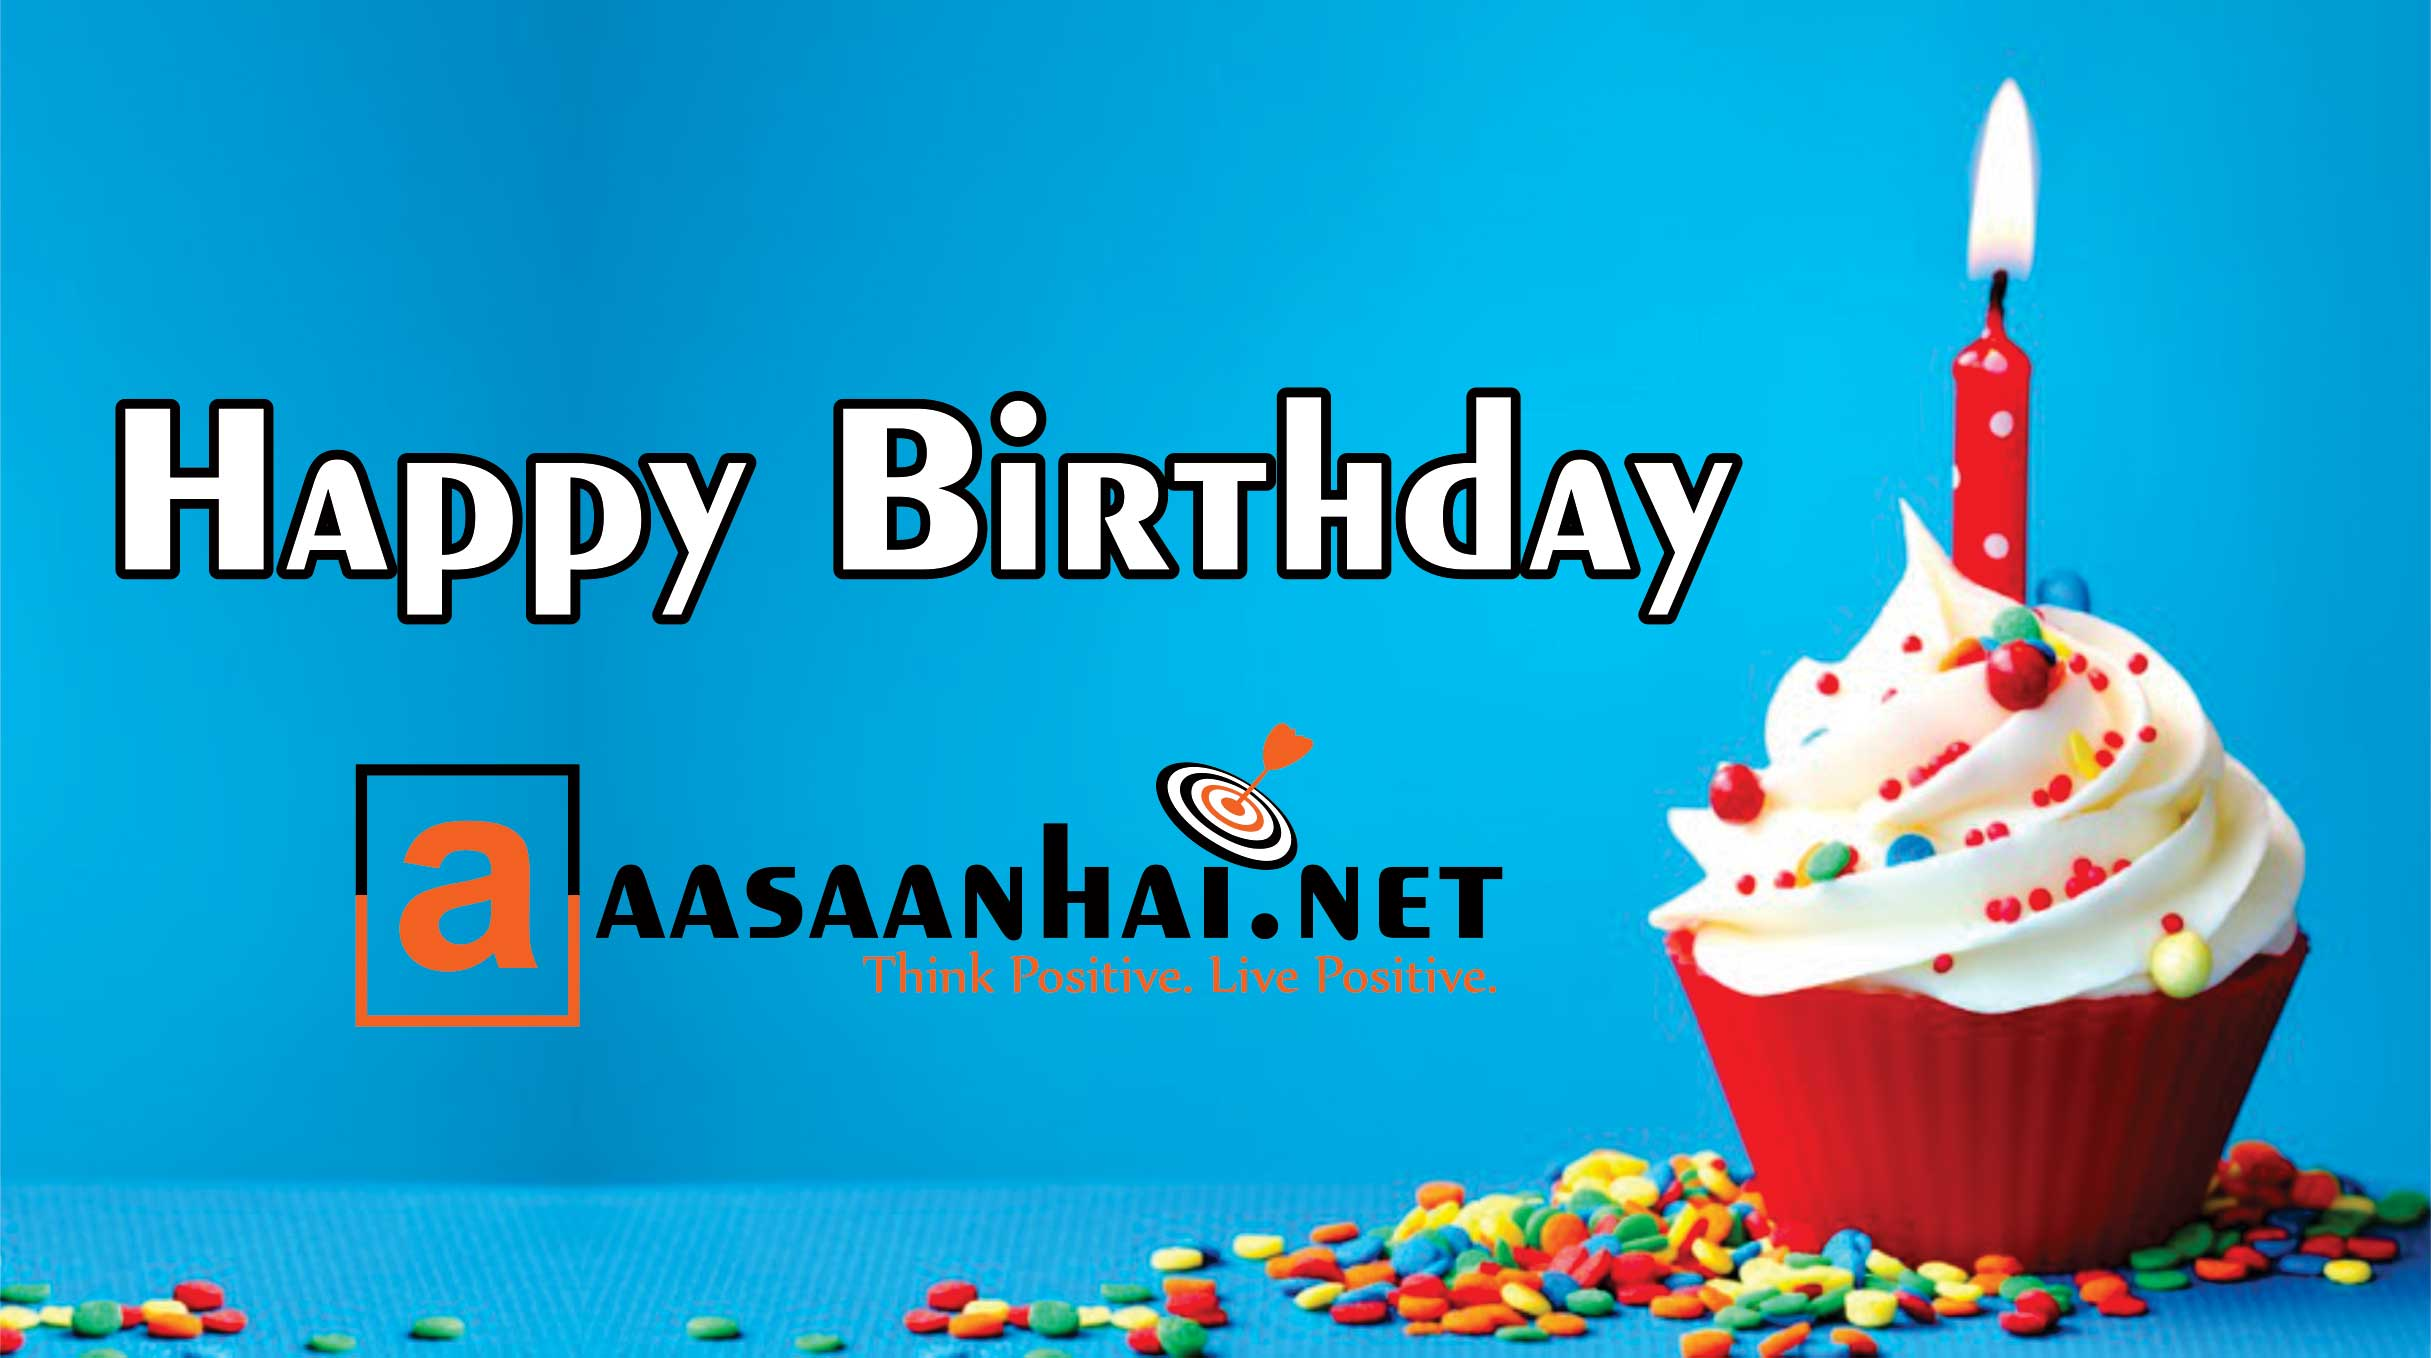 Happy birthday Aasaan hai